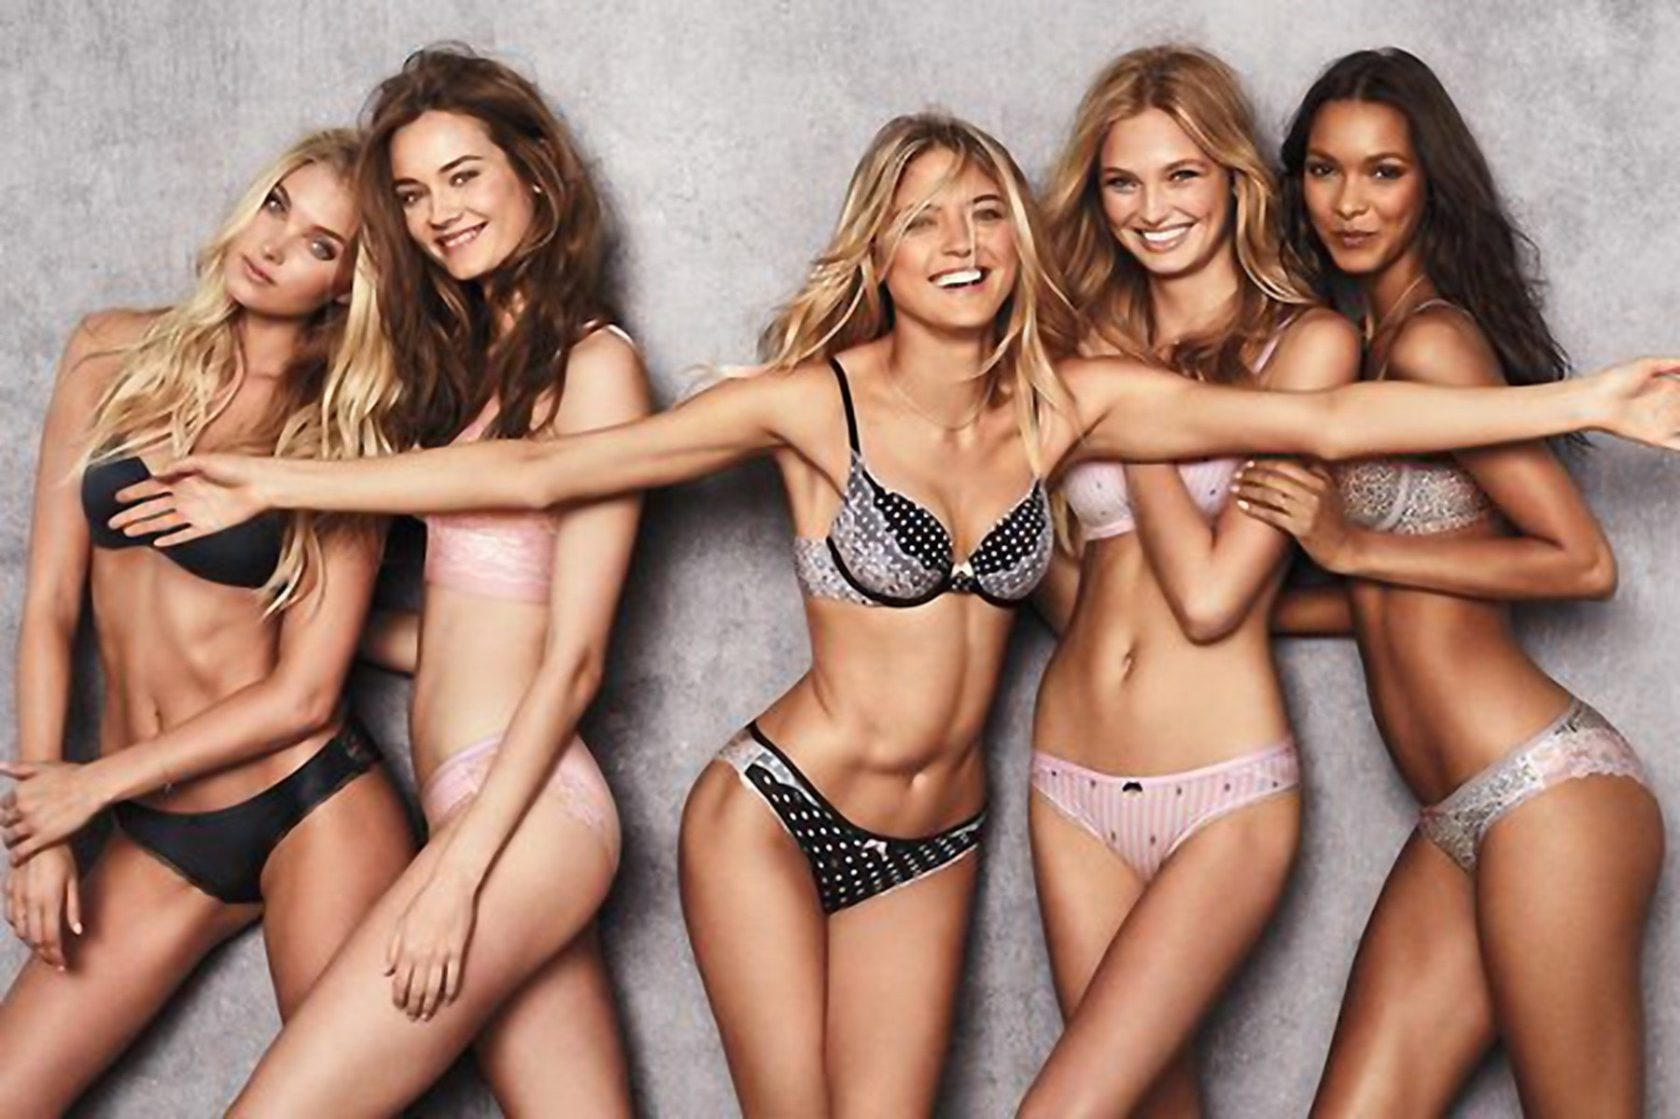 Victoria's Secret has posted a photo on Twitter with the following remarks: New styles. New colors. New Body By Victoria. See what all the fuss is about Twitter, 2015-07-28 14:19:45. Photo supplied by insight media. Service fee applies. This is a private photo posted on social networks and supplied by this Agency. This Agency does not claim any ownership including but not limited to copyright or license in the attached material. Fees charged by this Agency are for Agency's services only, and do not, nor are they intended to, convey to the user any ownership of copyright or license in the material. By publishing this material you expressly agree to indemnify and to hold this Agency and its directors, shareholders and employees harmless from any loss, claims, damages, demands, expenses (including legal fees), or any causes of action or allegation against this Agency arising out of or connected in any way with publication of the material., Image: 254025380, License: Rights-managed, Restrictions: Photo supplied by insight media. For editorial use only. Single rate handling fee required., Model Release: no, Credit line: Profimedia, Insight Media